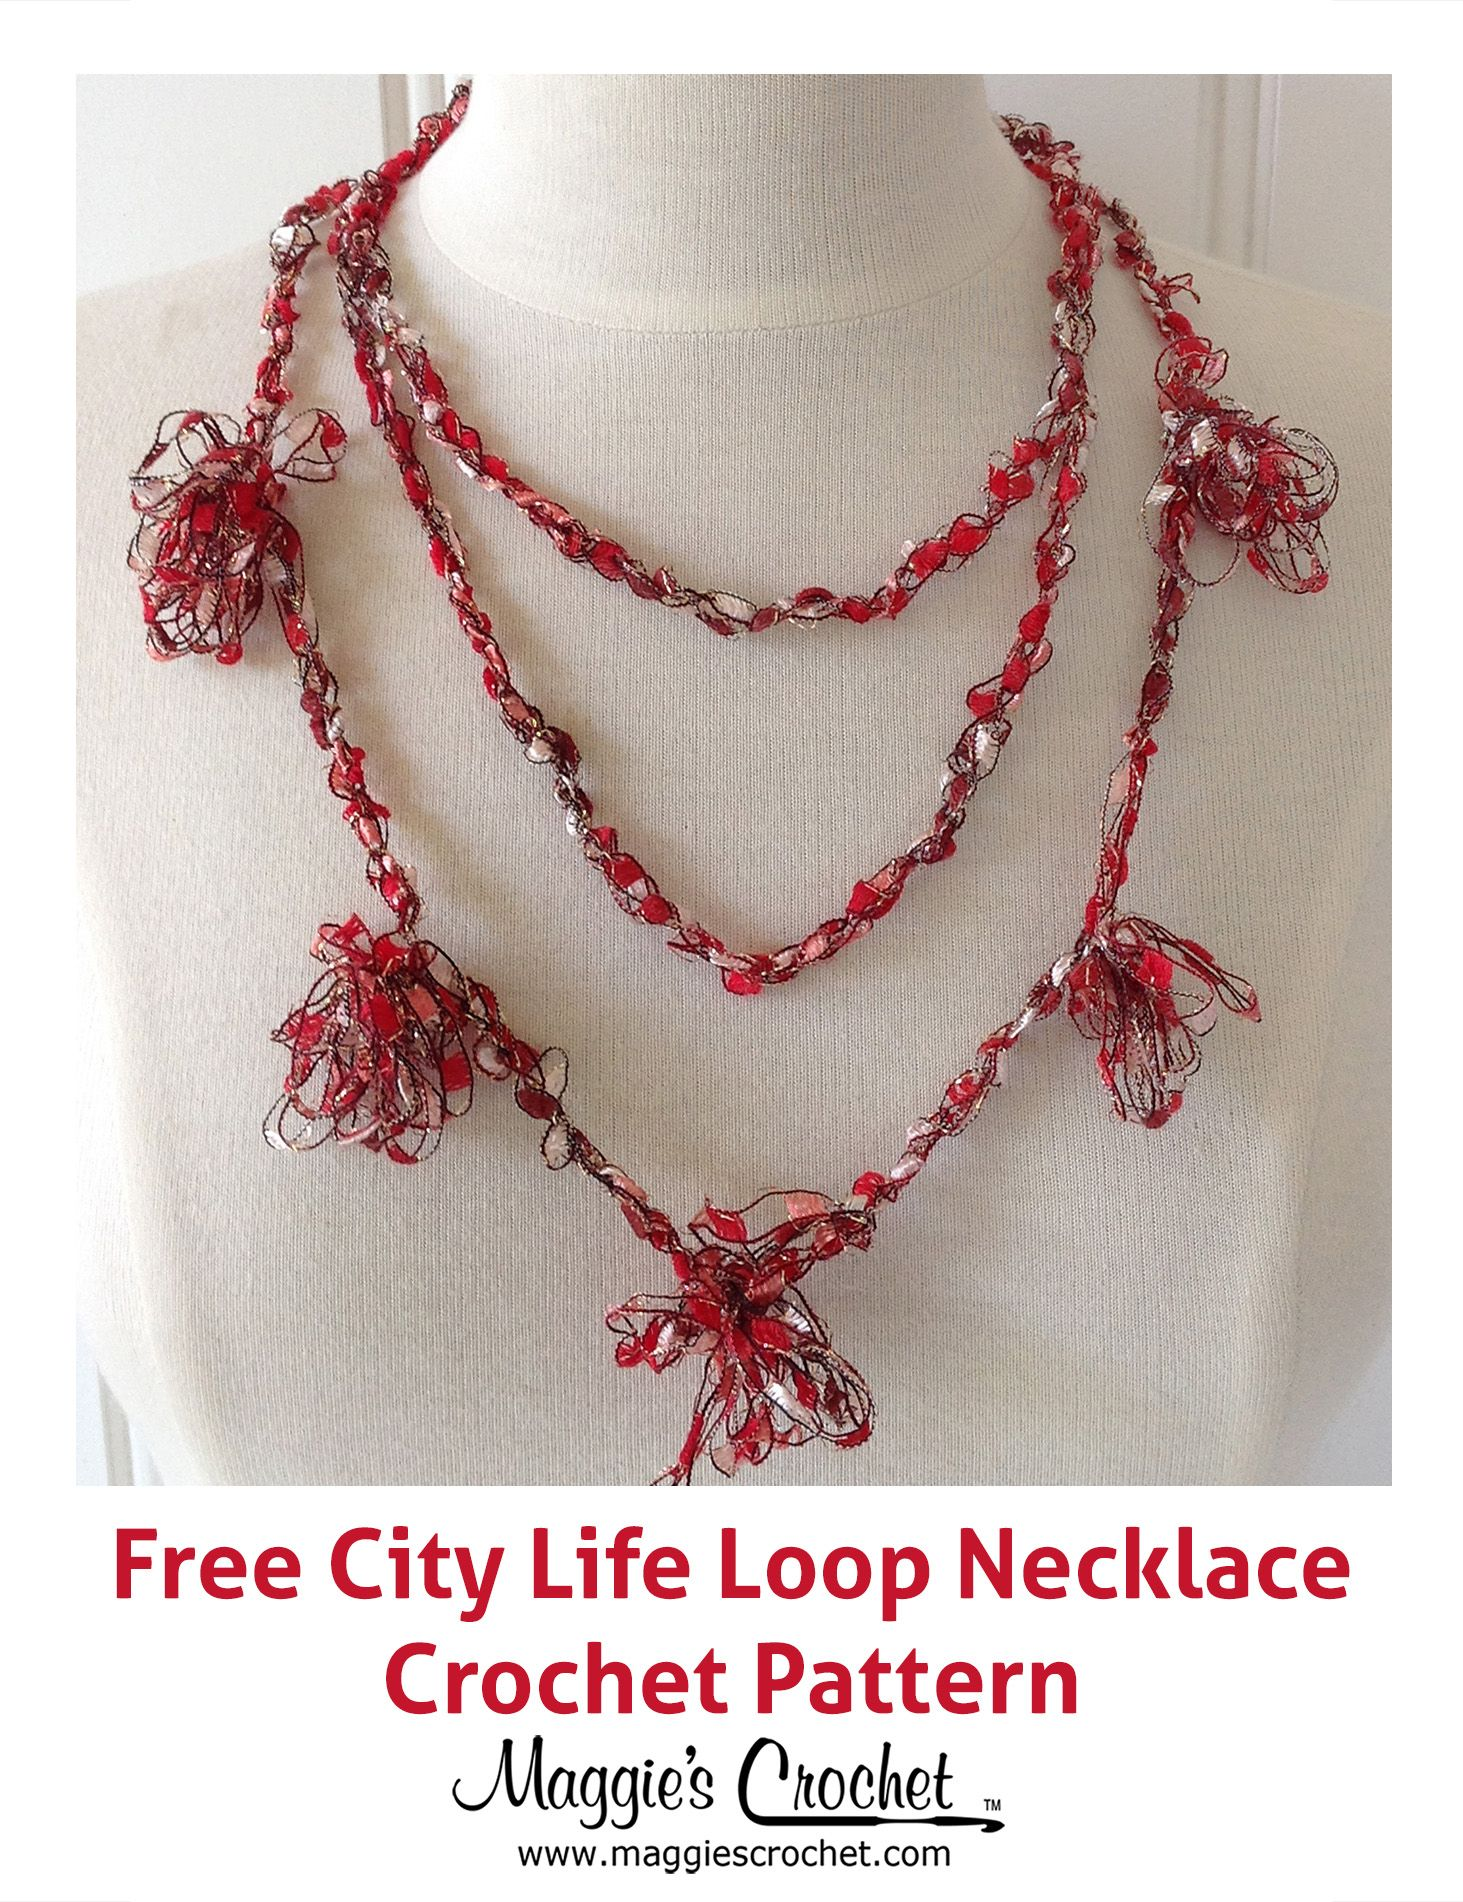 City life loopy necklace free crochet pattern from maggies city life loopy necklace free crochet pattern from maggies crochet bankloansurffo Images